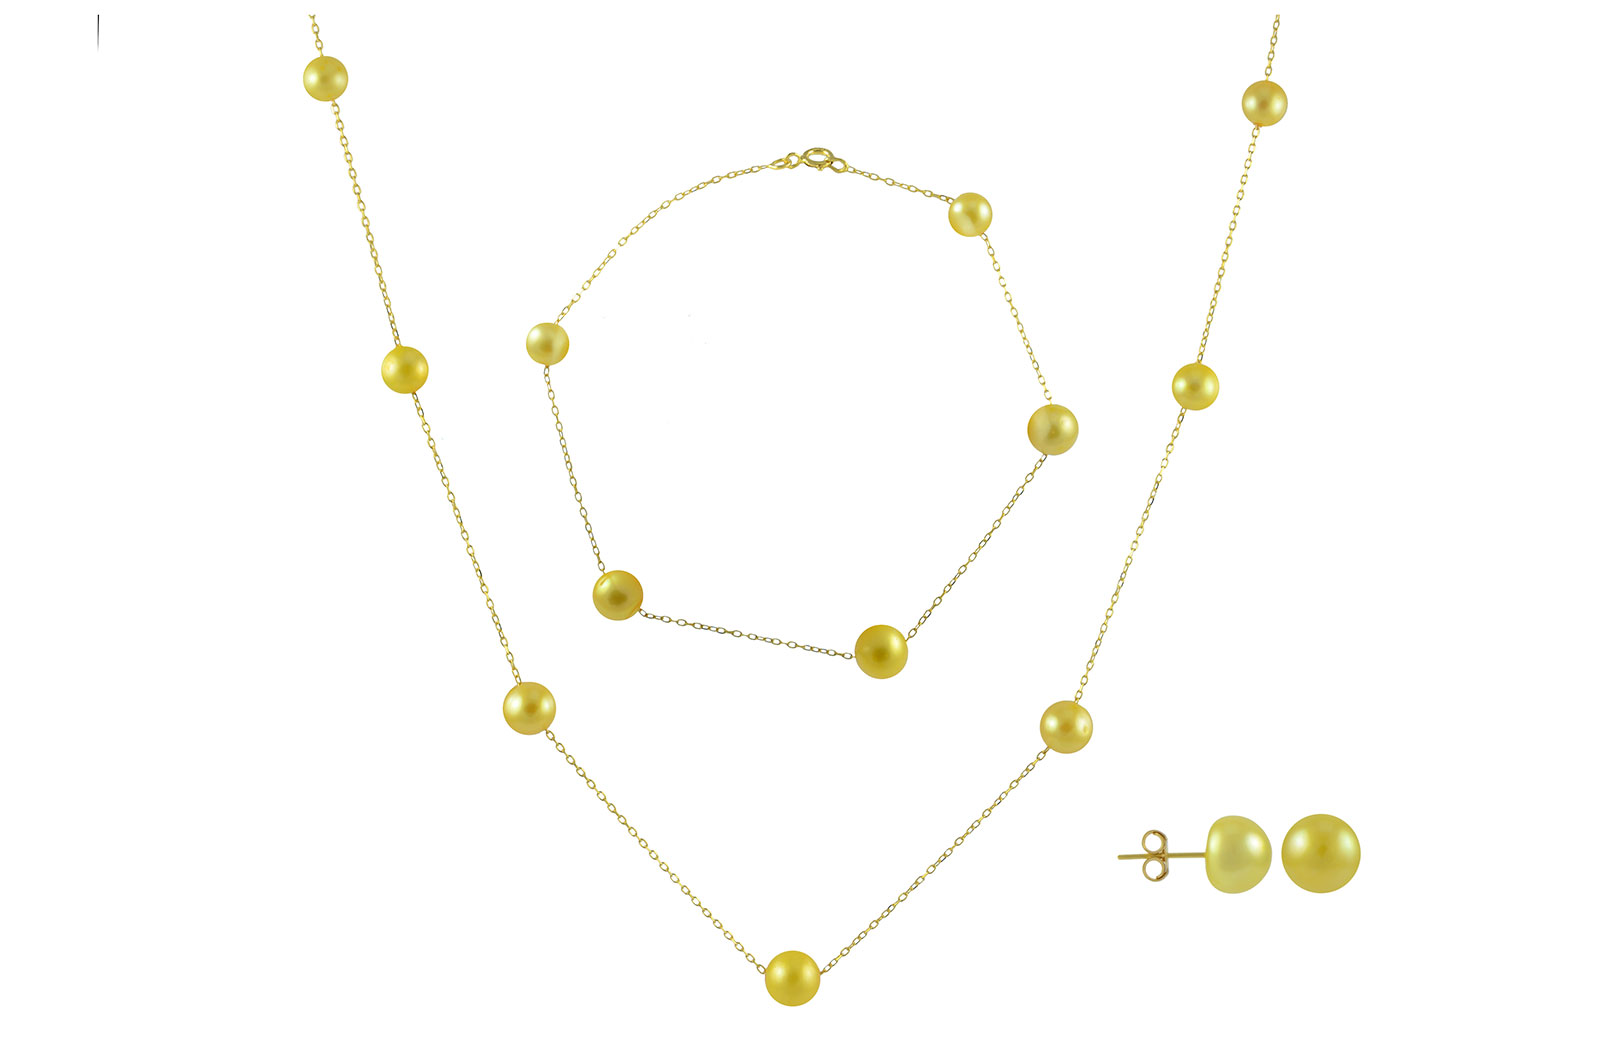 VP Jewels 18K Solid Gold 5-7MM Gradual  Built-in Gold- Yellow Pearl Necklace + 18K Gold 7MM Pearl Earrings + Bracelet